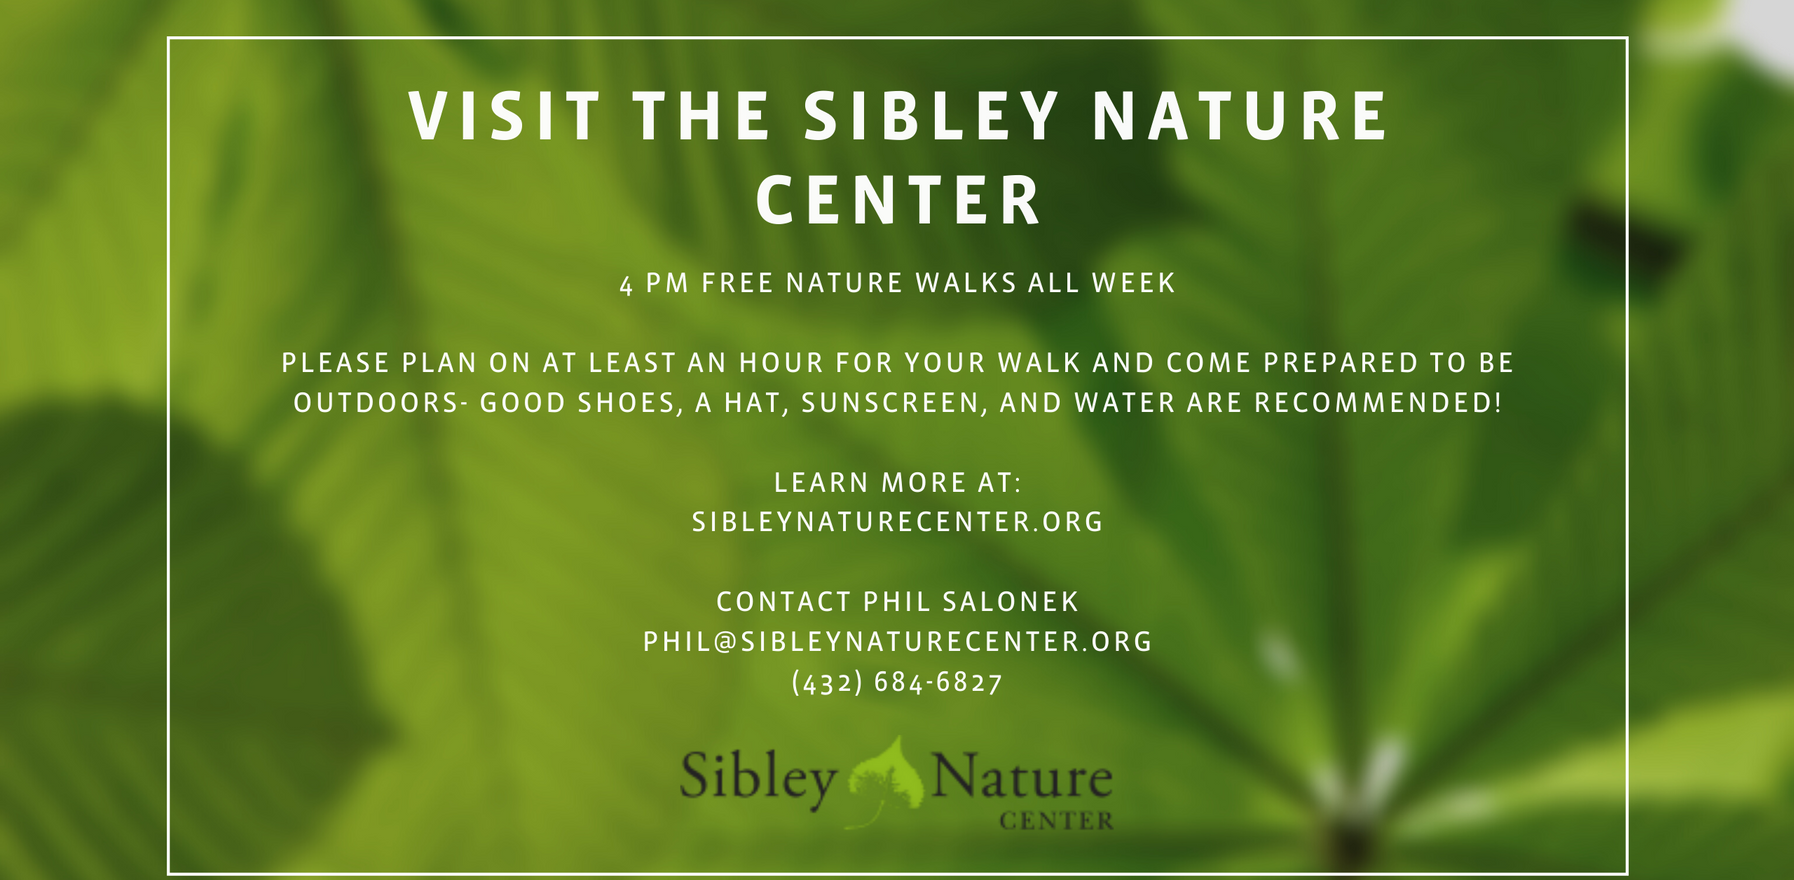 Visit the Sibley Nature Center